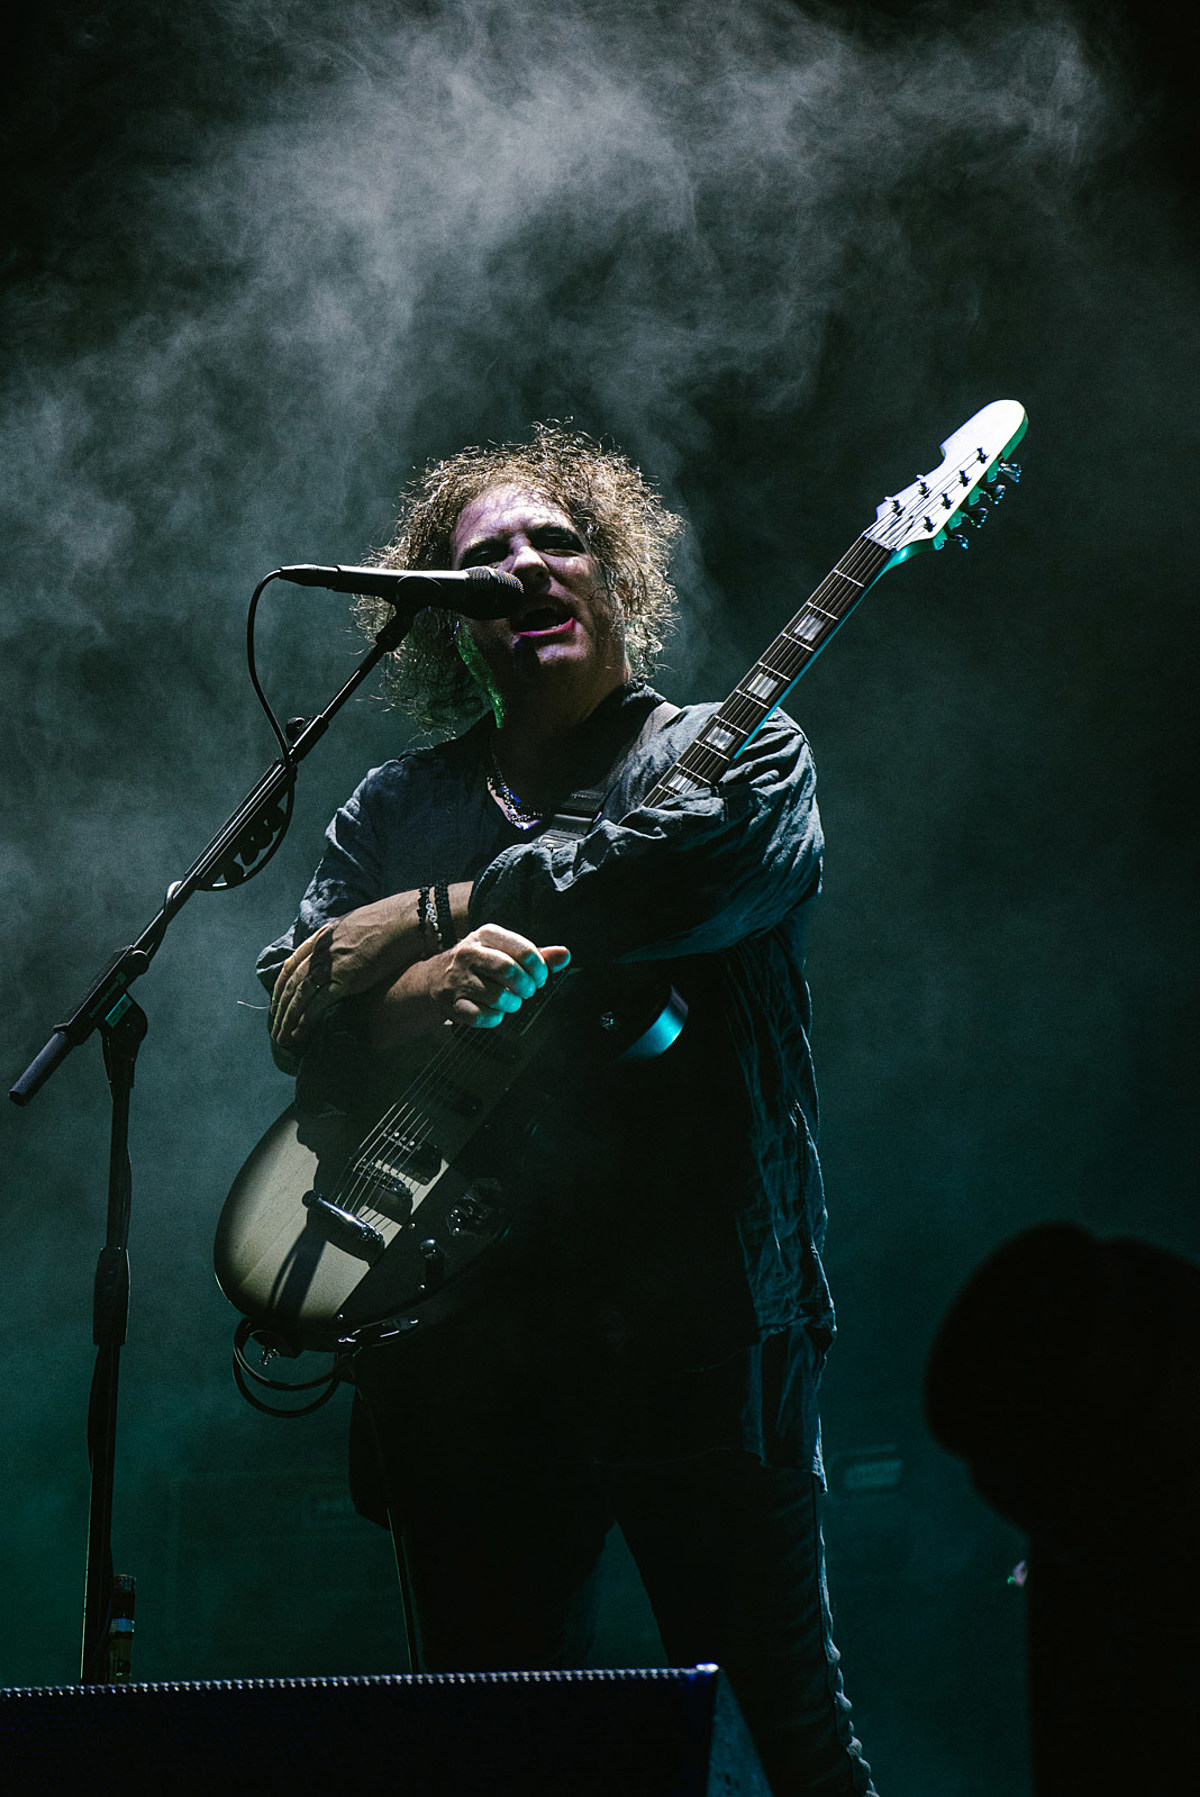 Robert Smith says The Cure have 3 new albums on the way (one out this year)